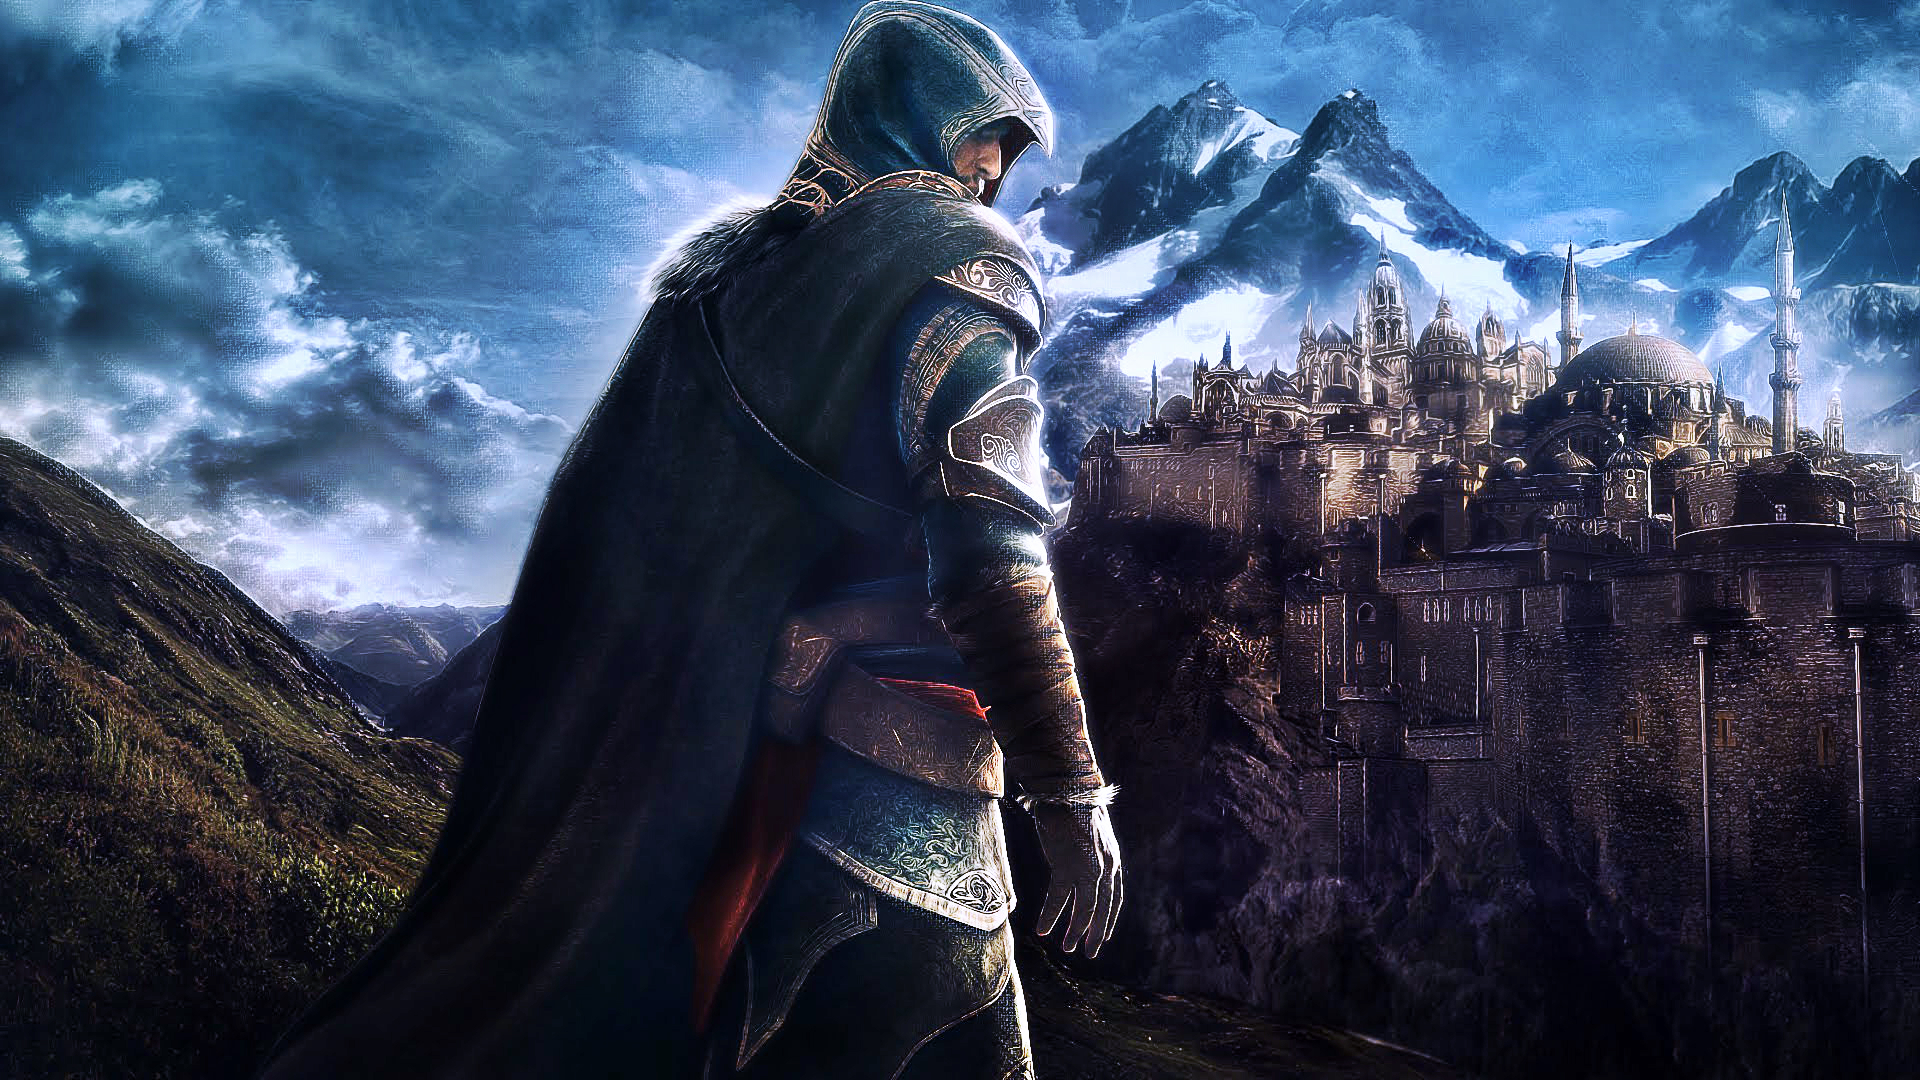 Hd Game Wallpapers - W...